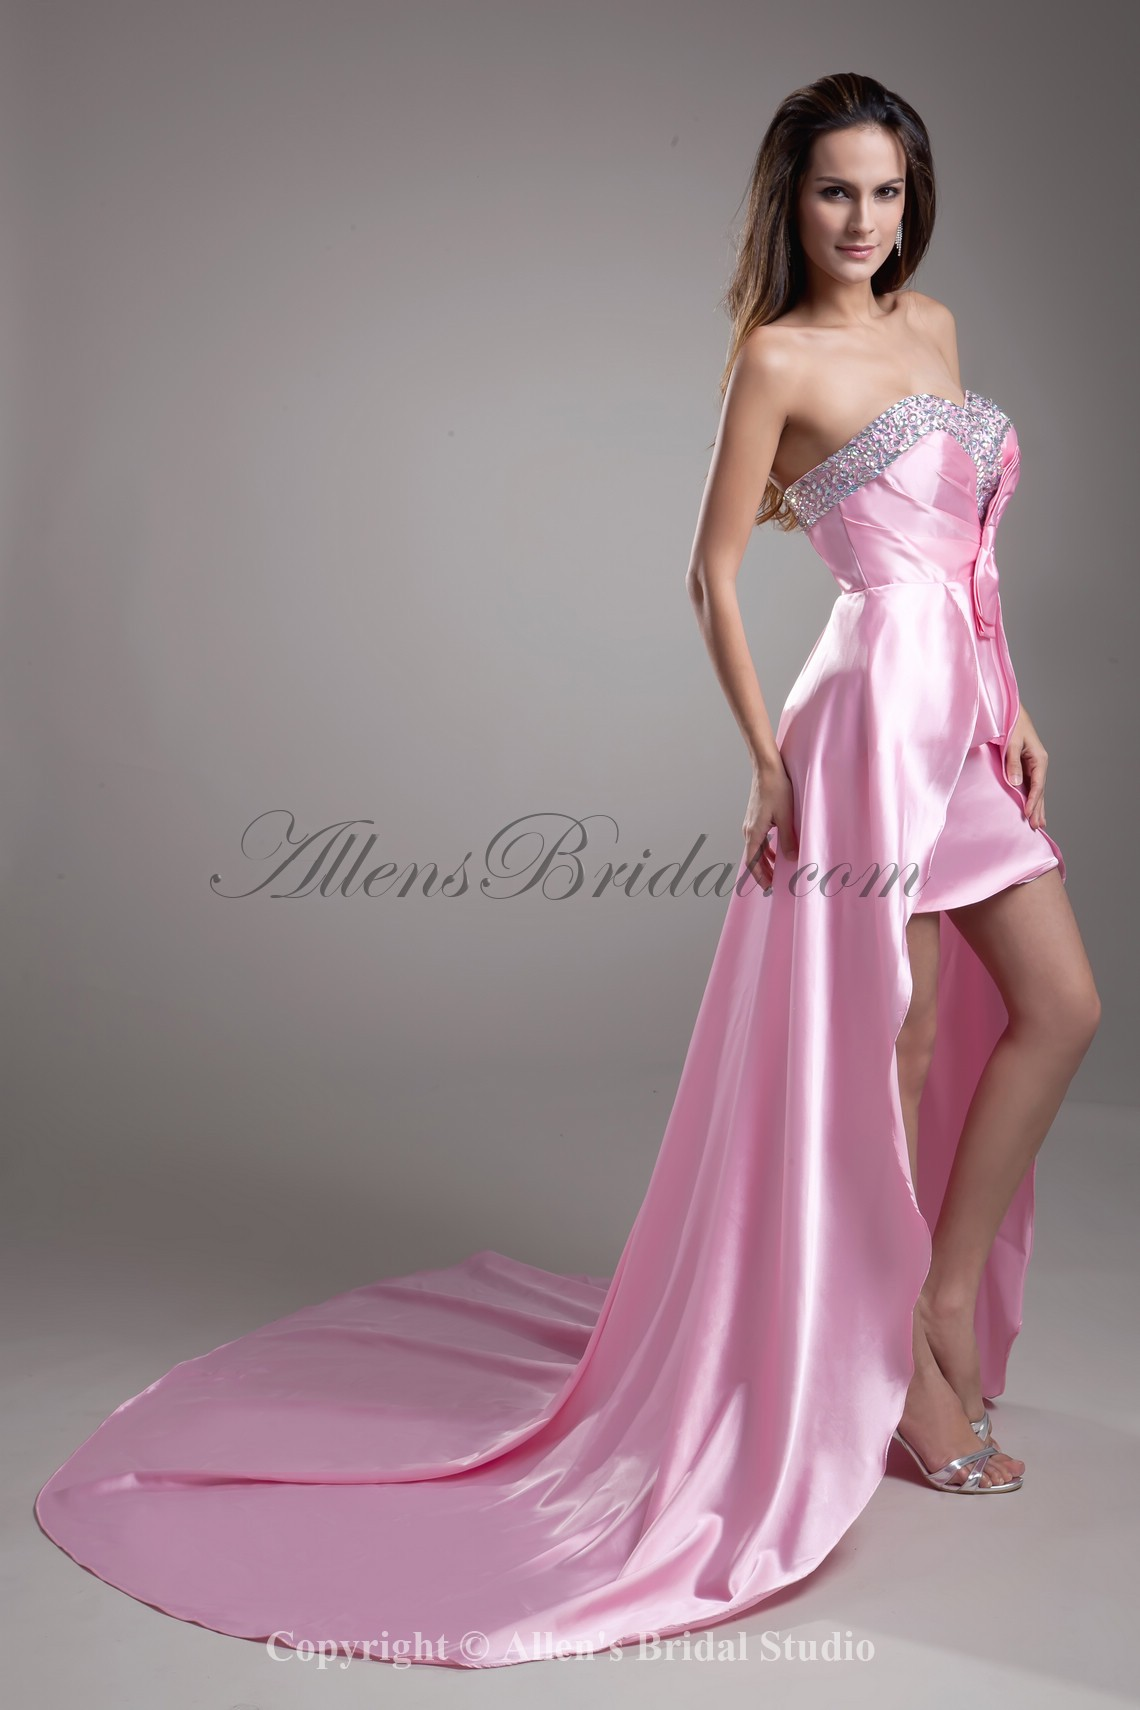 /705-5650/satin-sweetheart-neckline-sweep-train-a-line-crystals-prom-dress.jpg